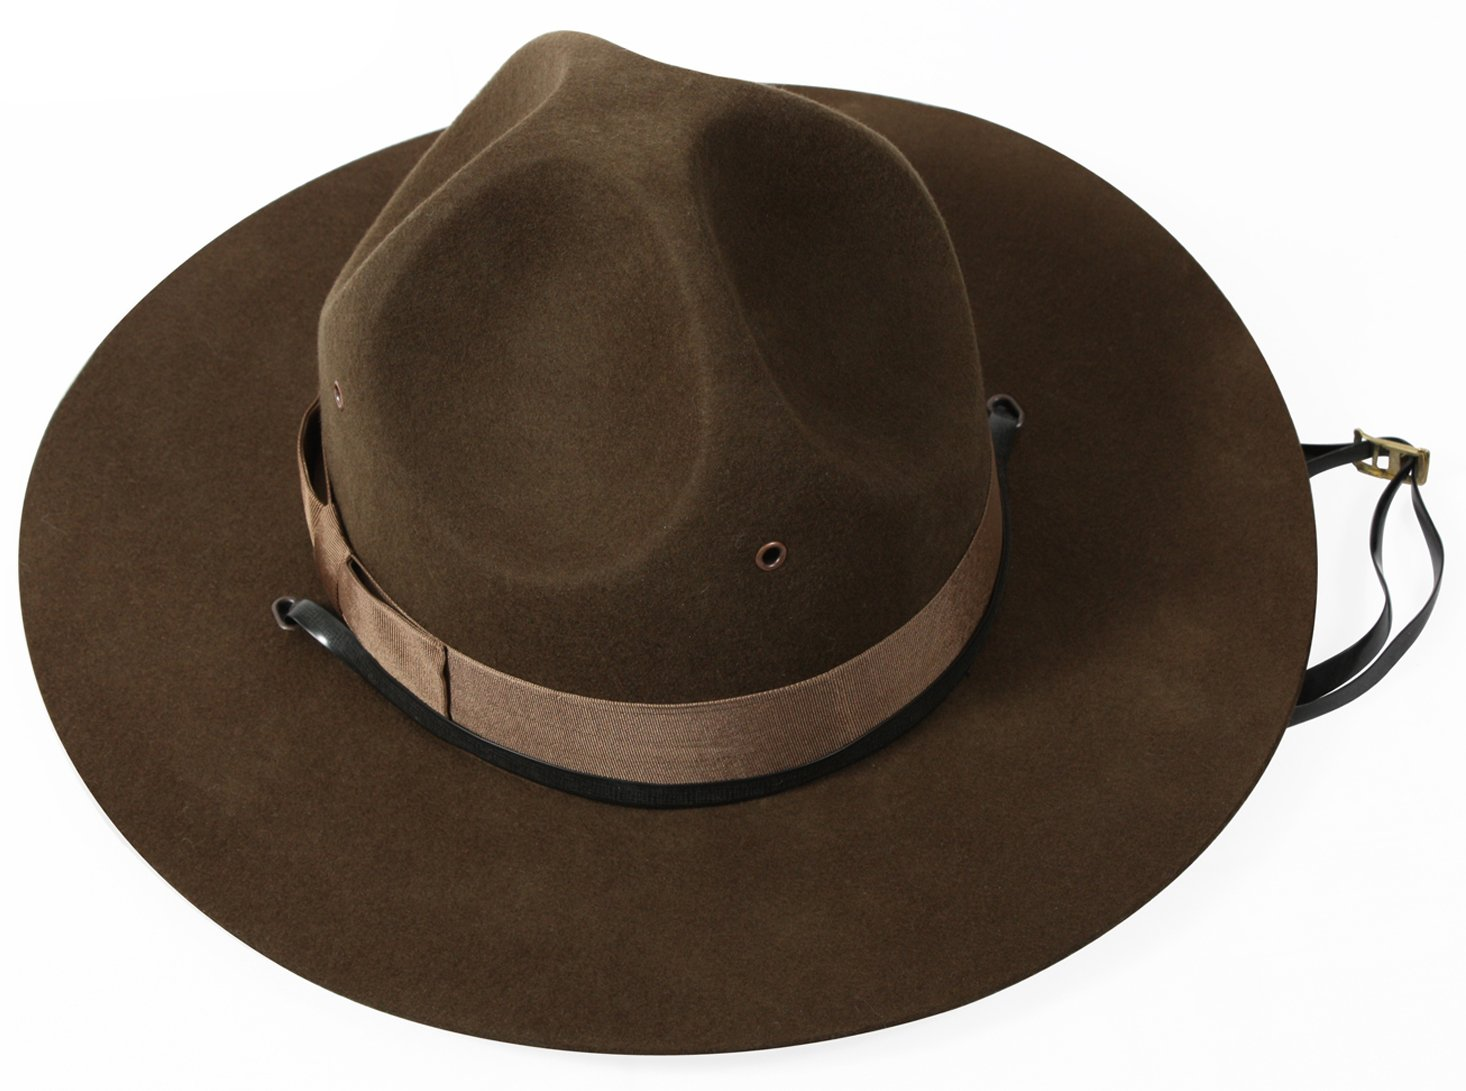 Rothco Military Campaign Hat 56556.75